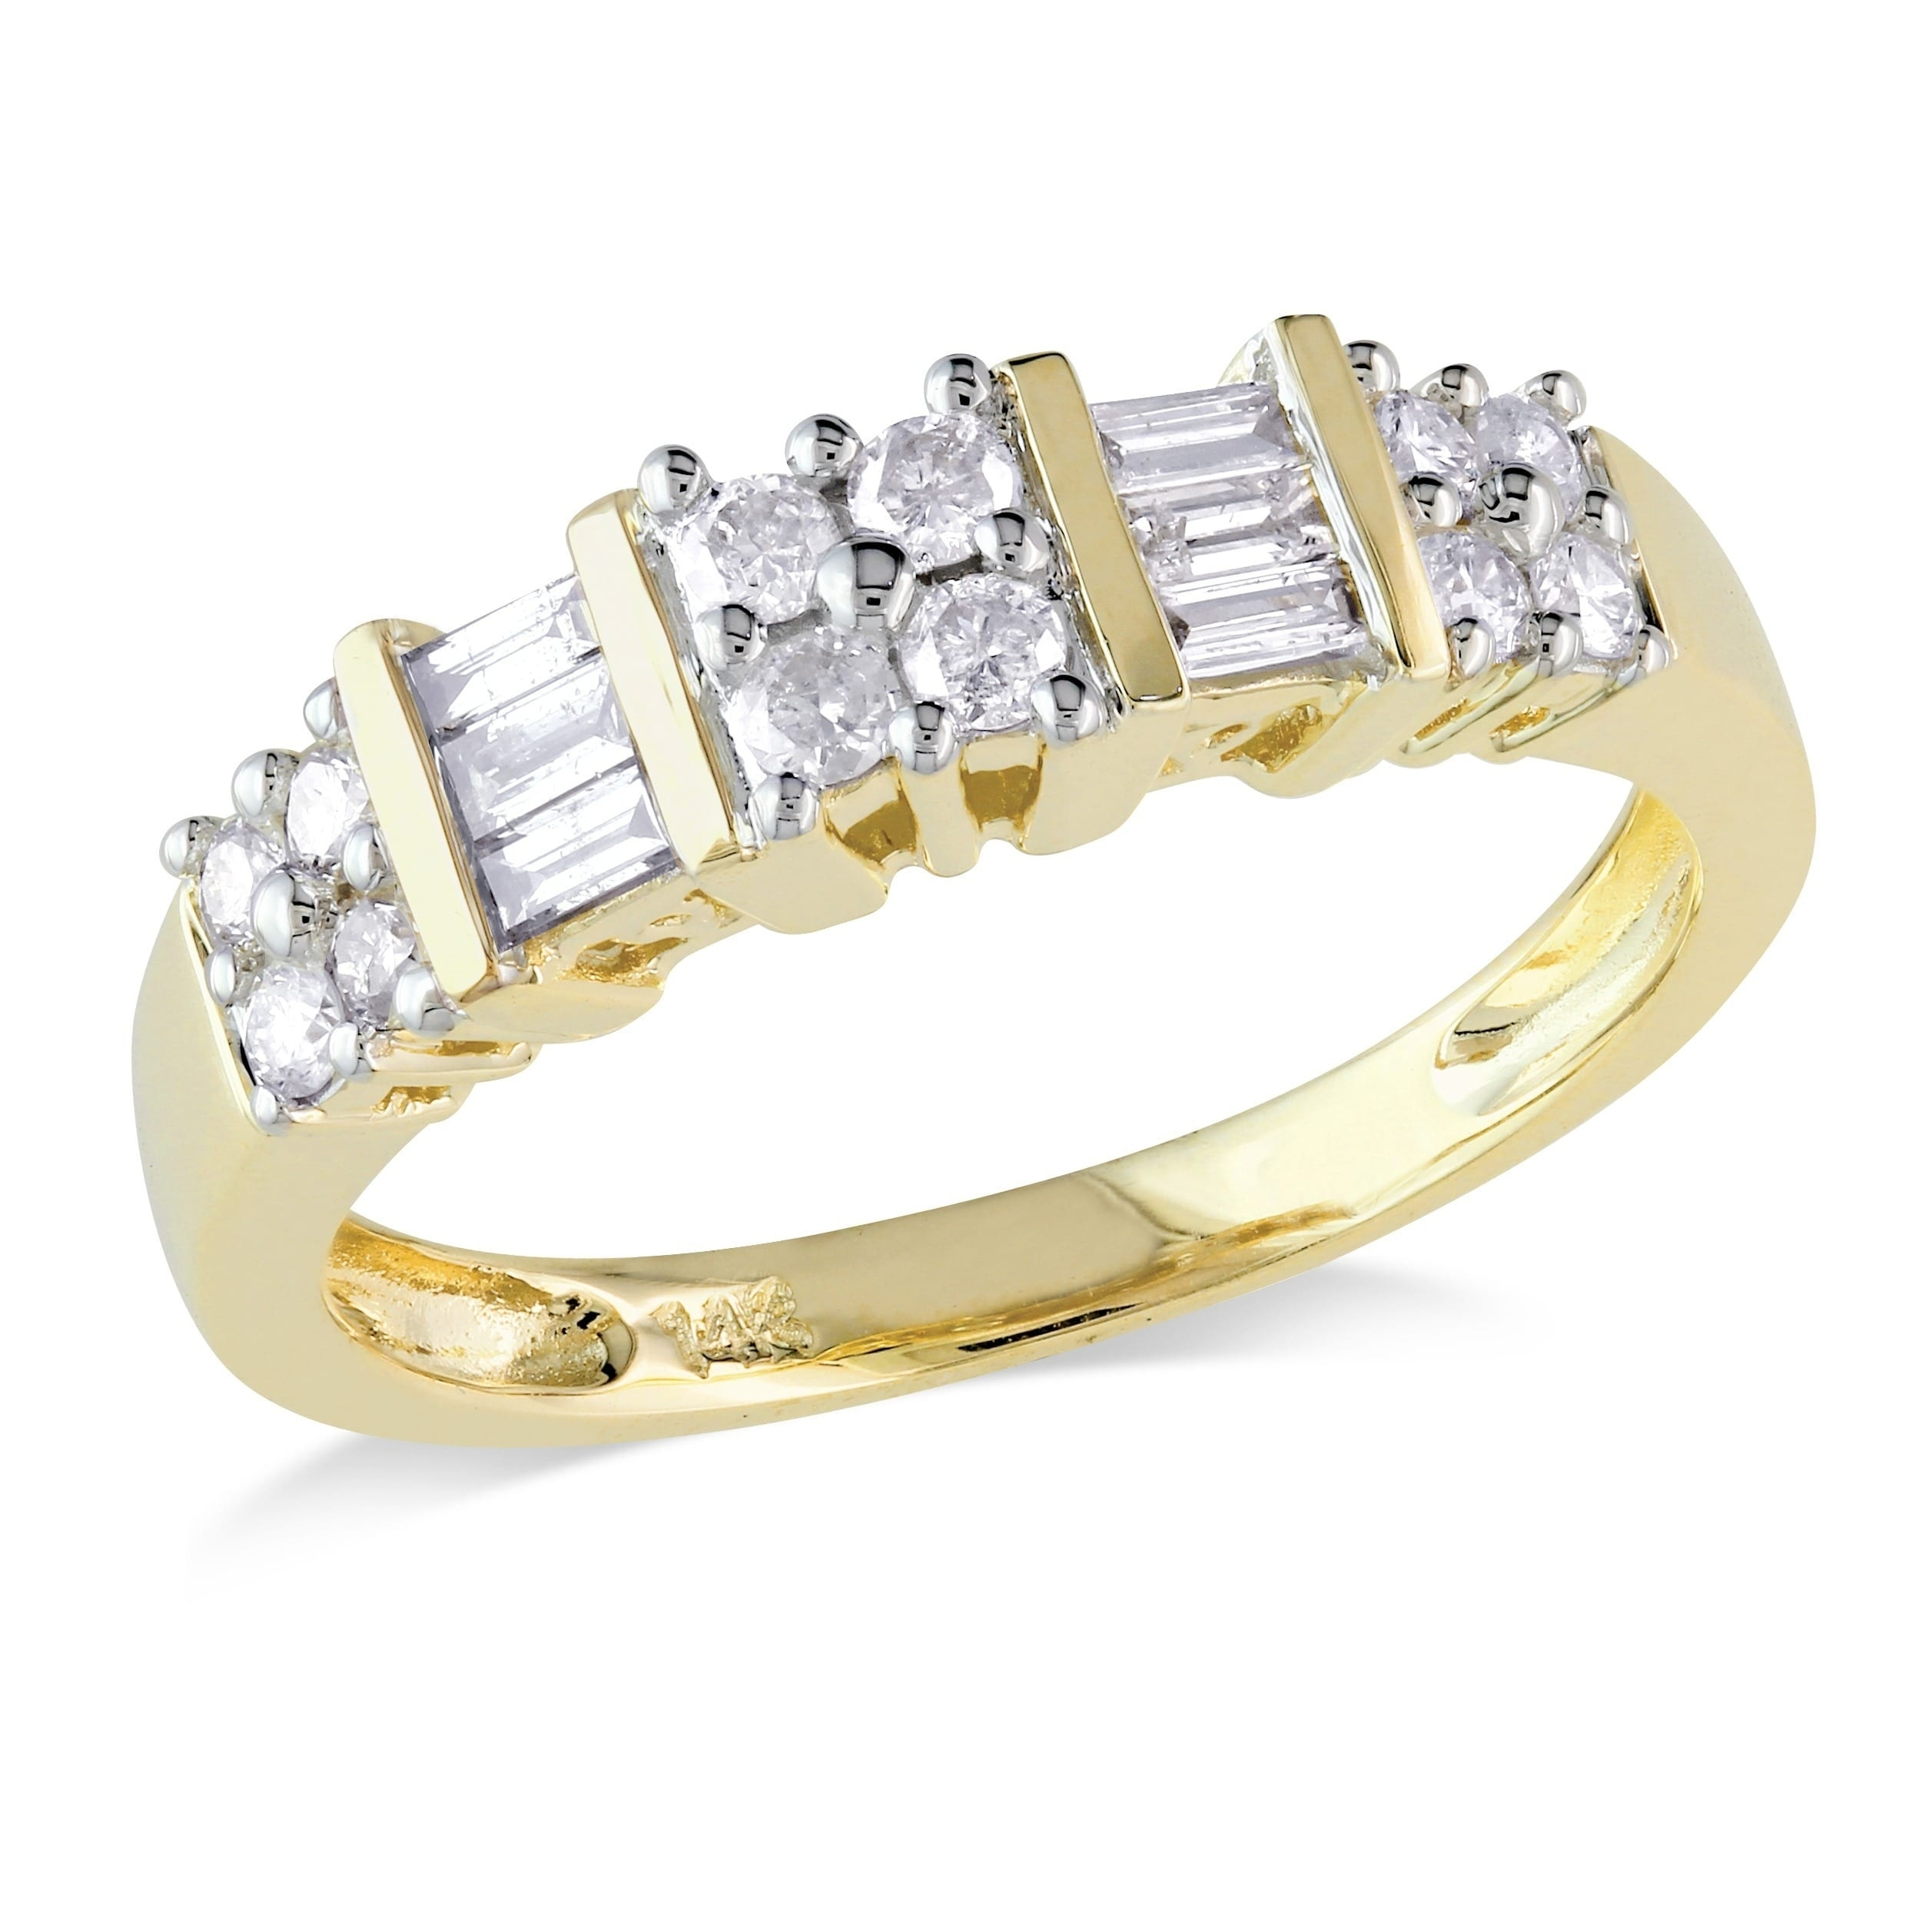 Shop Miadora 14k Yellow Gold 1/2ct Tdw Baguette Diamond Anniversary Pertaining To 2017 Round And Baguette Diamond Anniversary Bands In 14k White Gold (View 11 of 15)